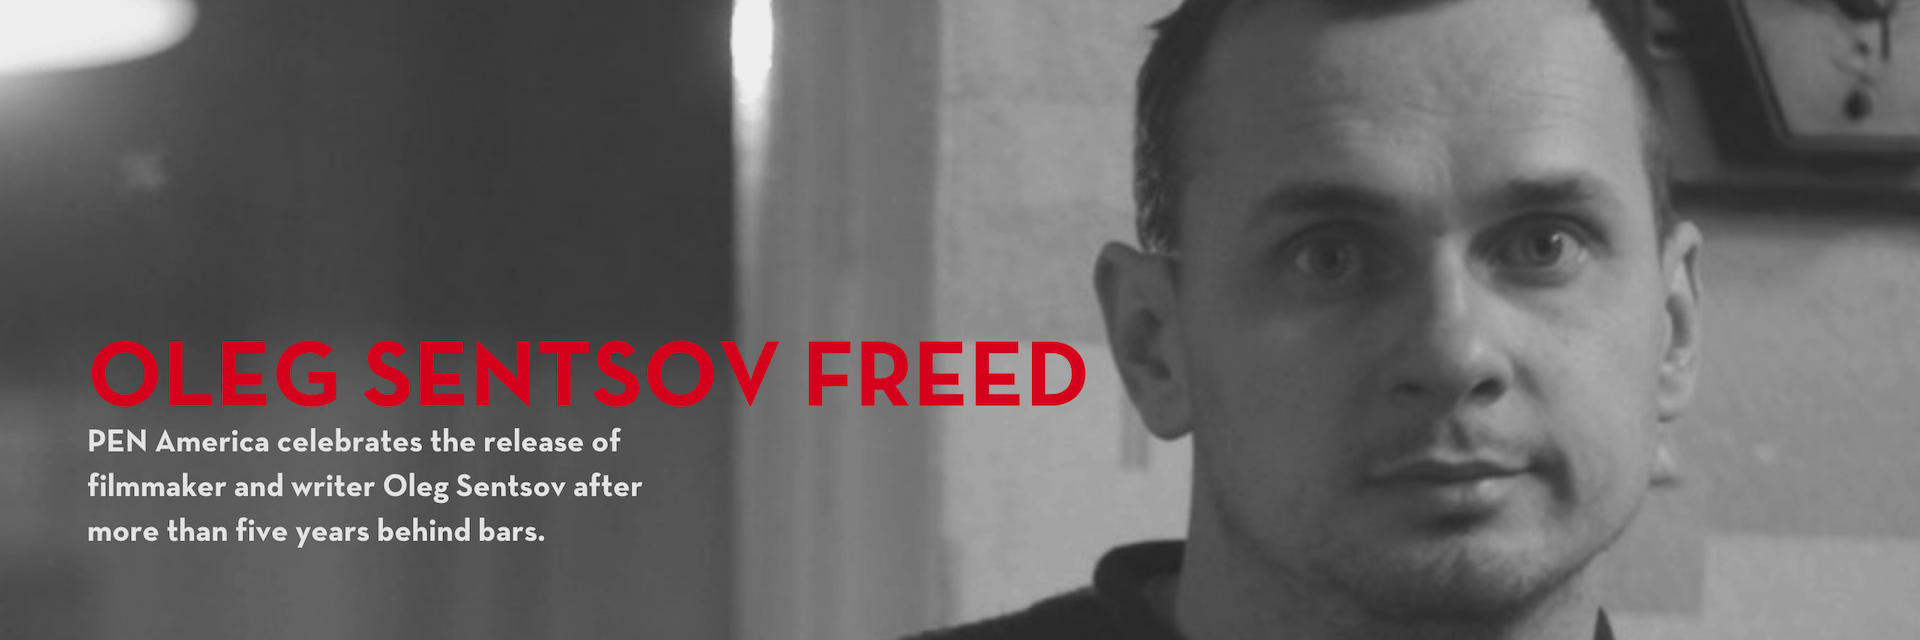 Oleg Sentsov freed